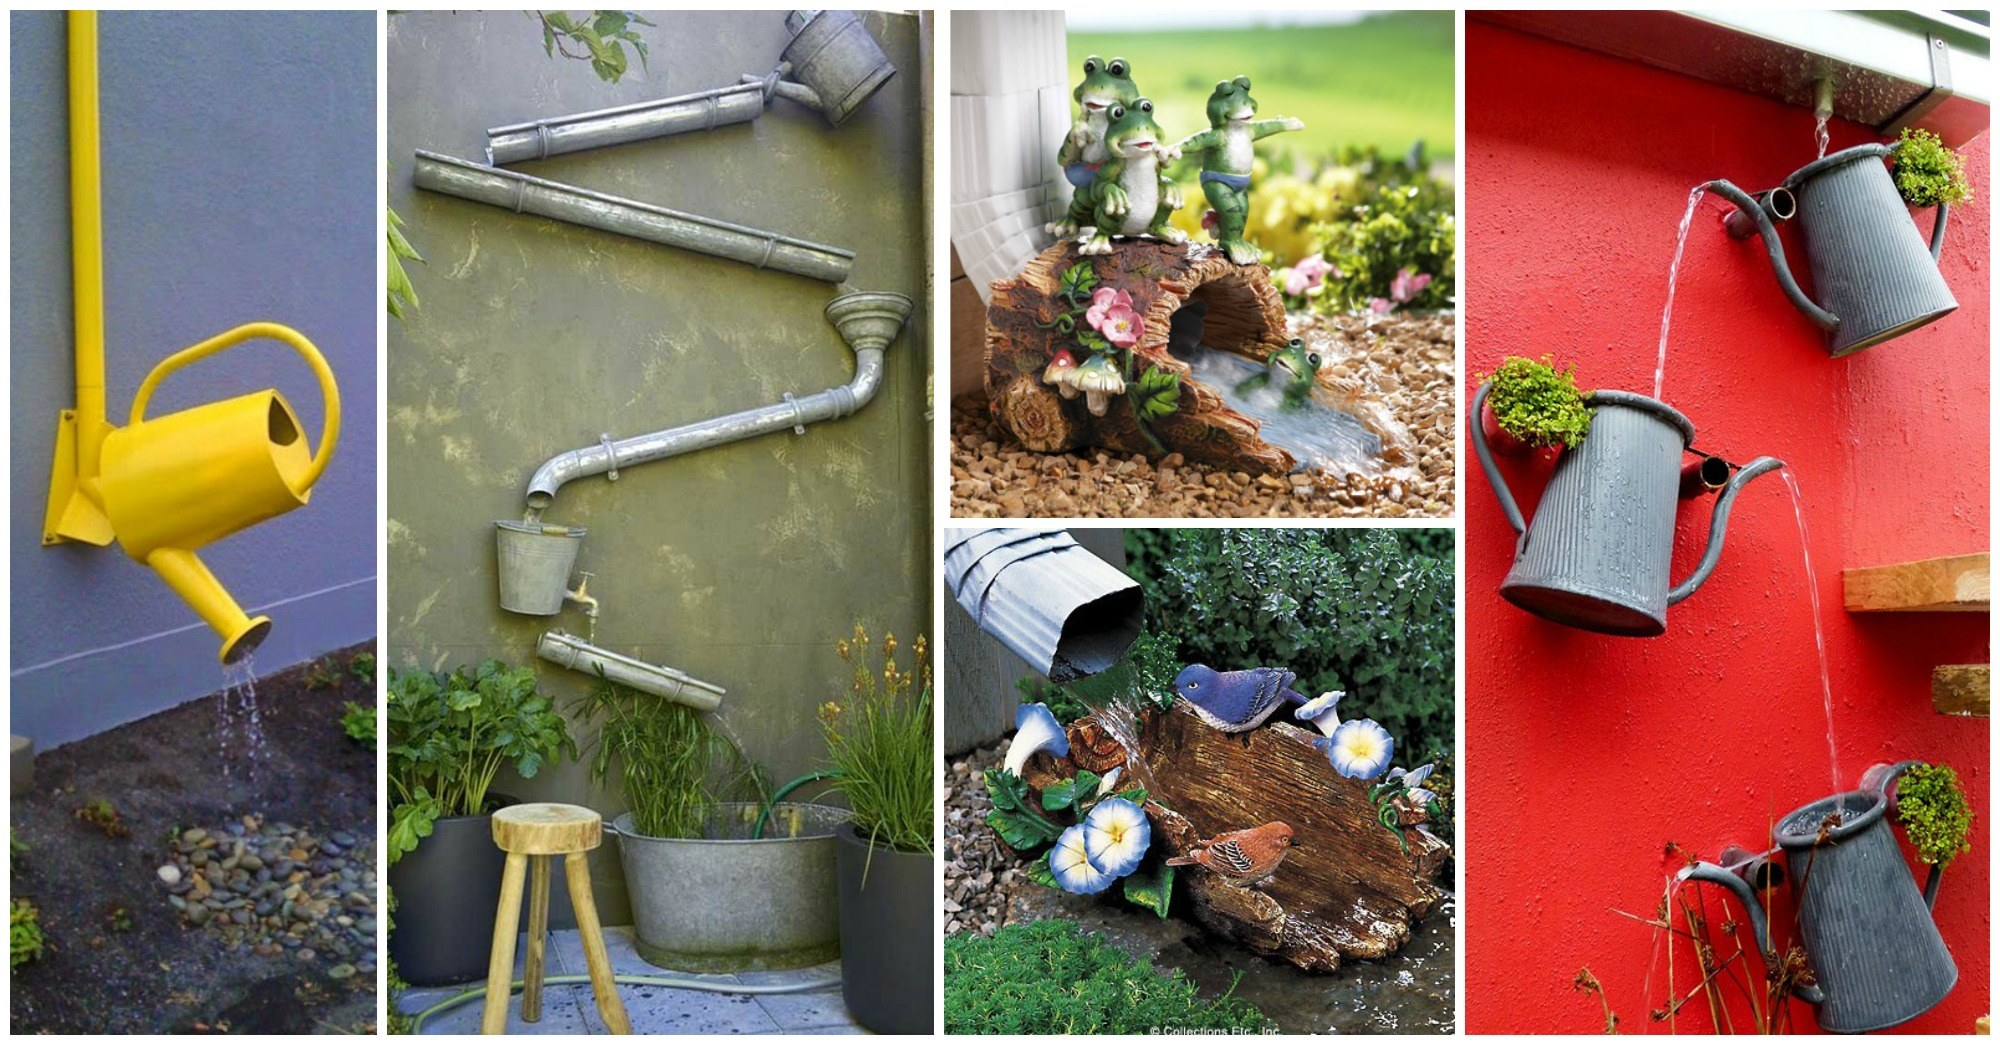 12 Unique Downspouts for Your Home You Should Not Miss